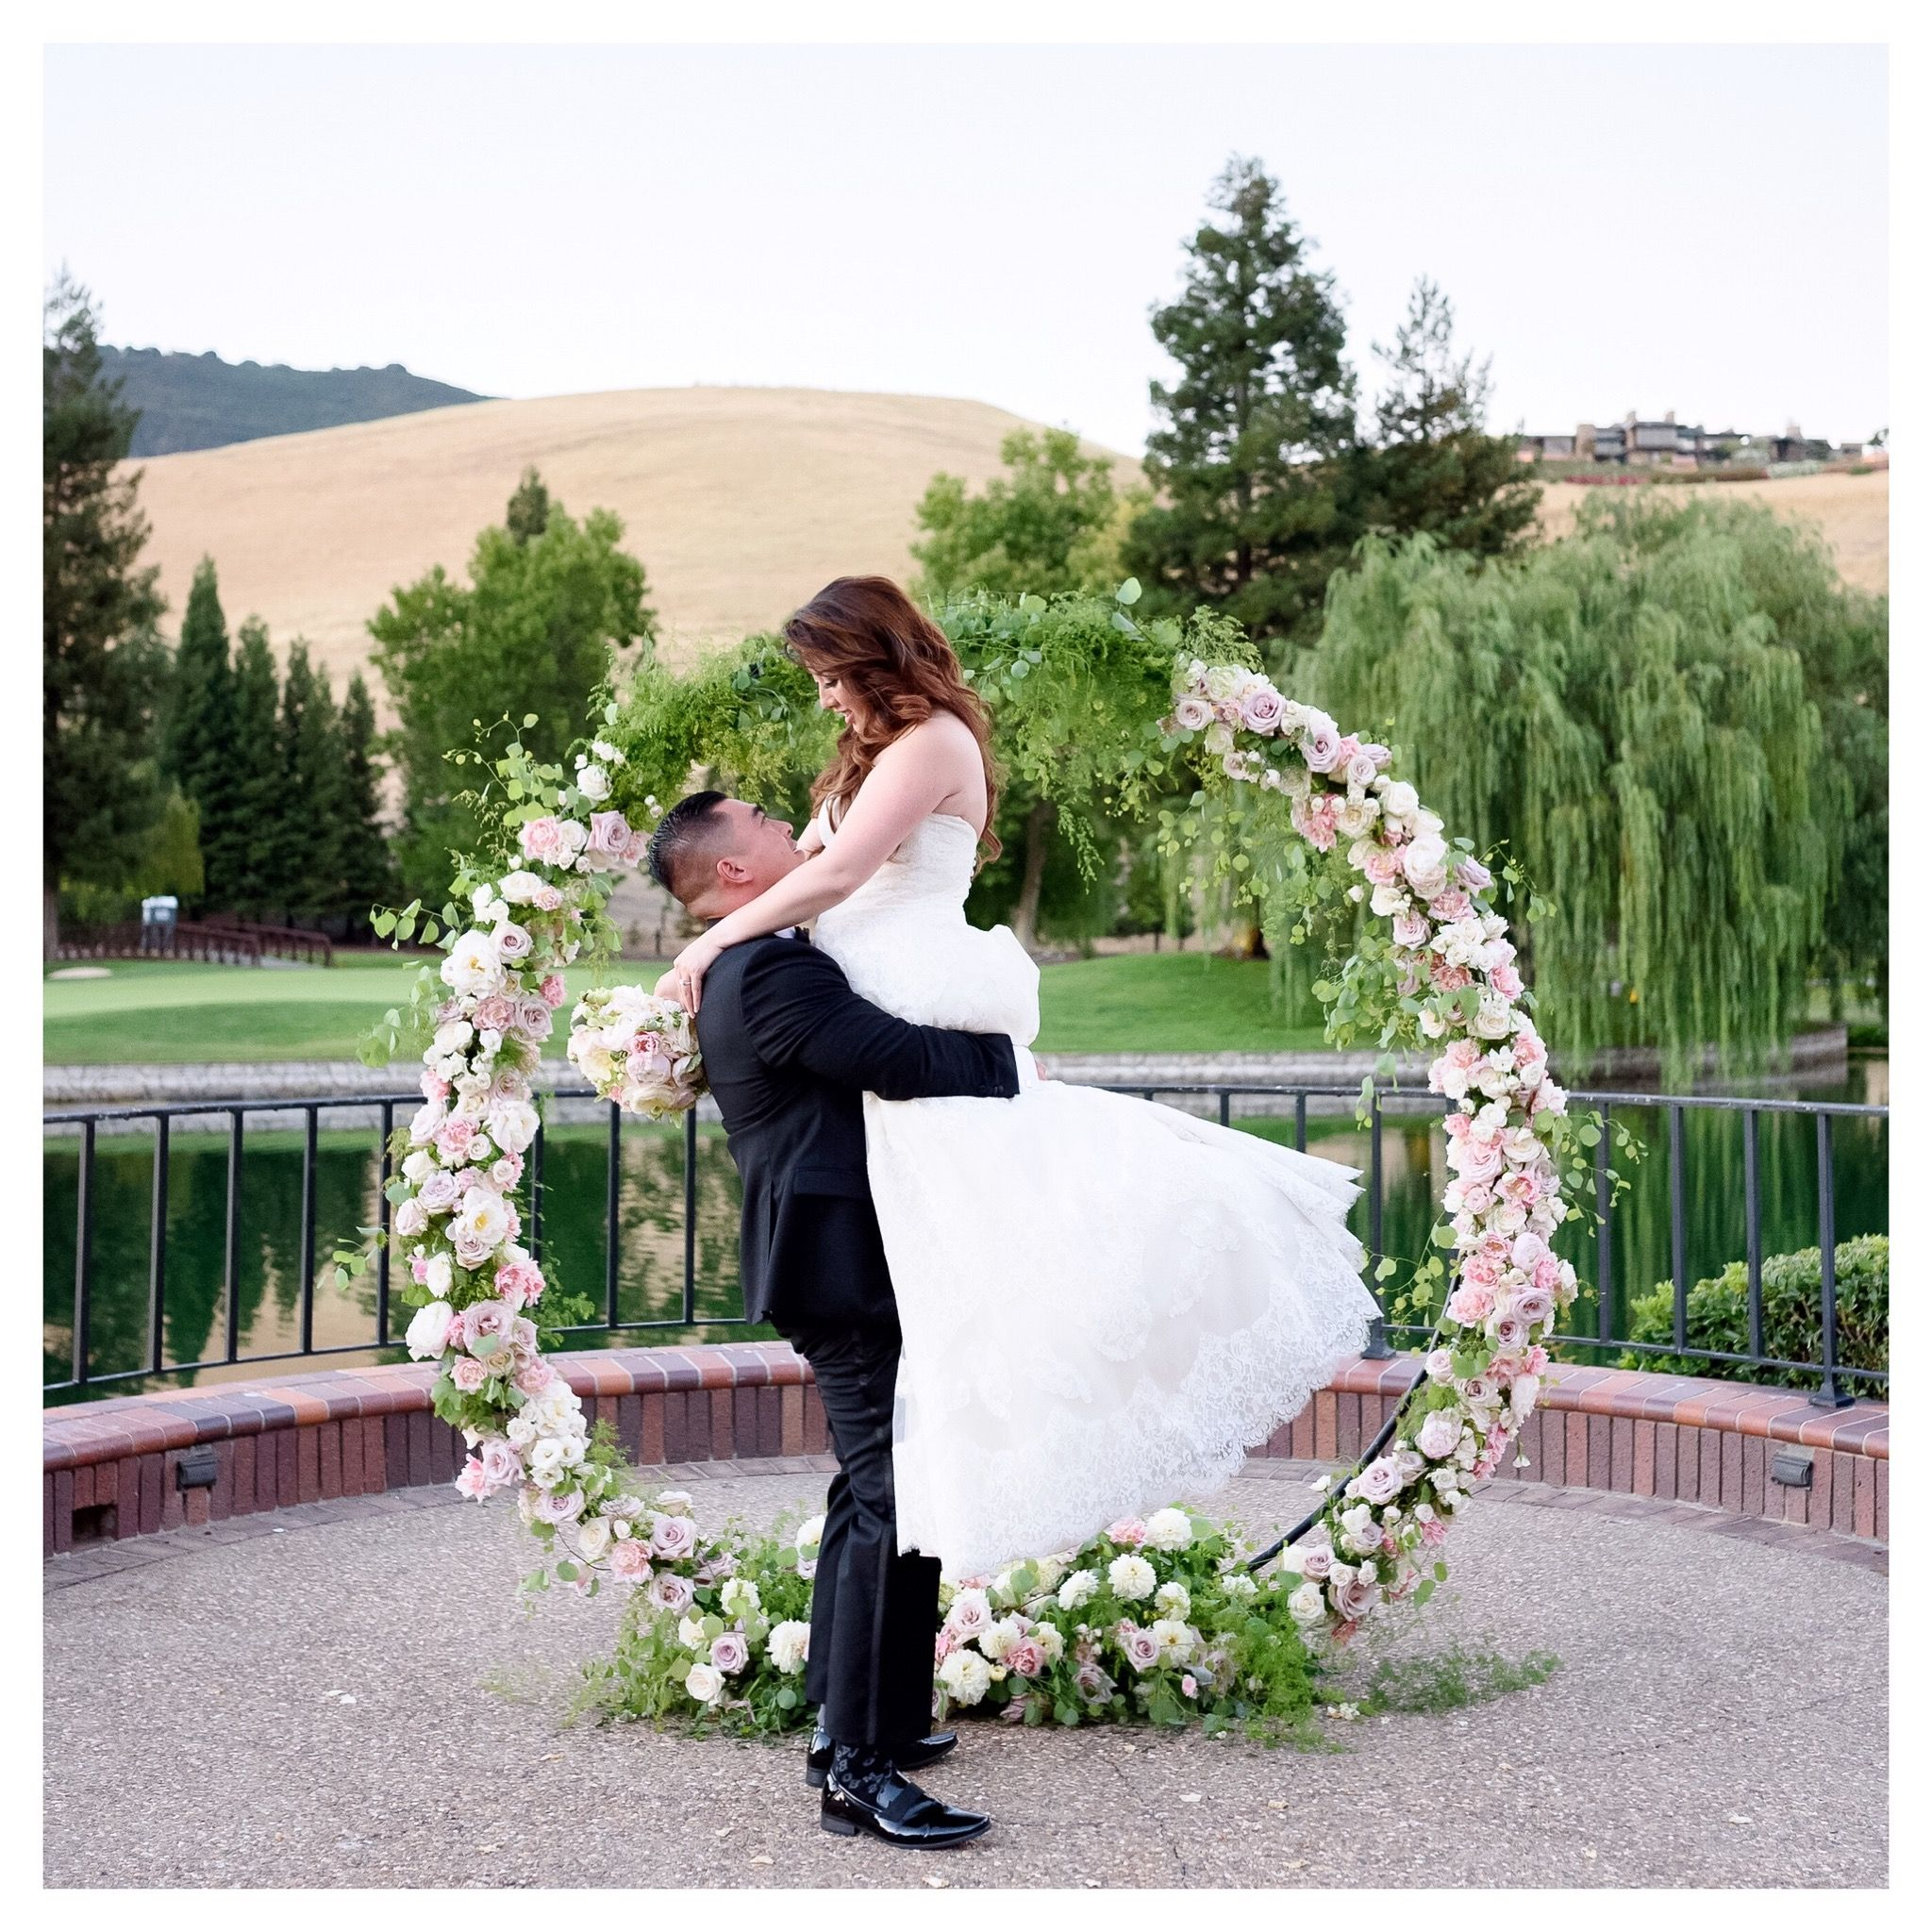 Wedding Altar Decorations For November: Circle Of Love Round Arch + Lake Backdrop Made The